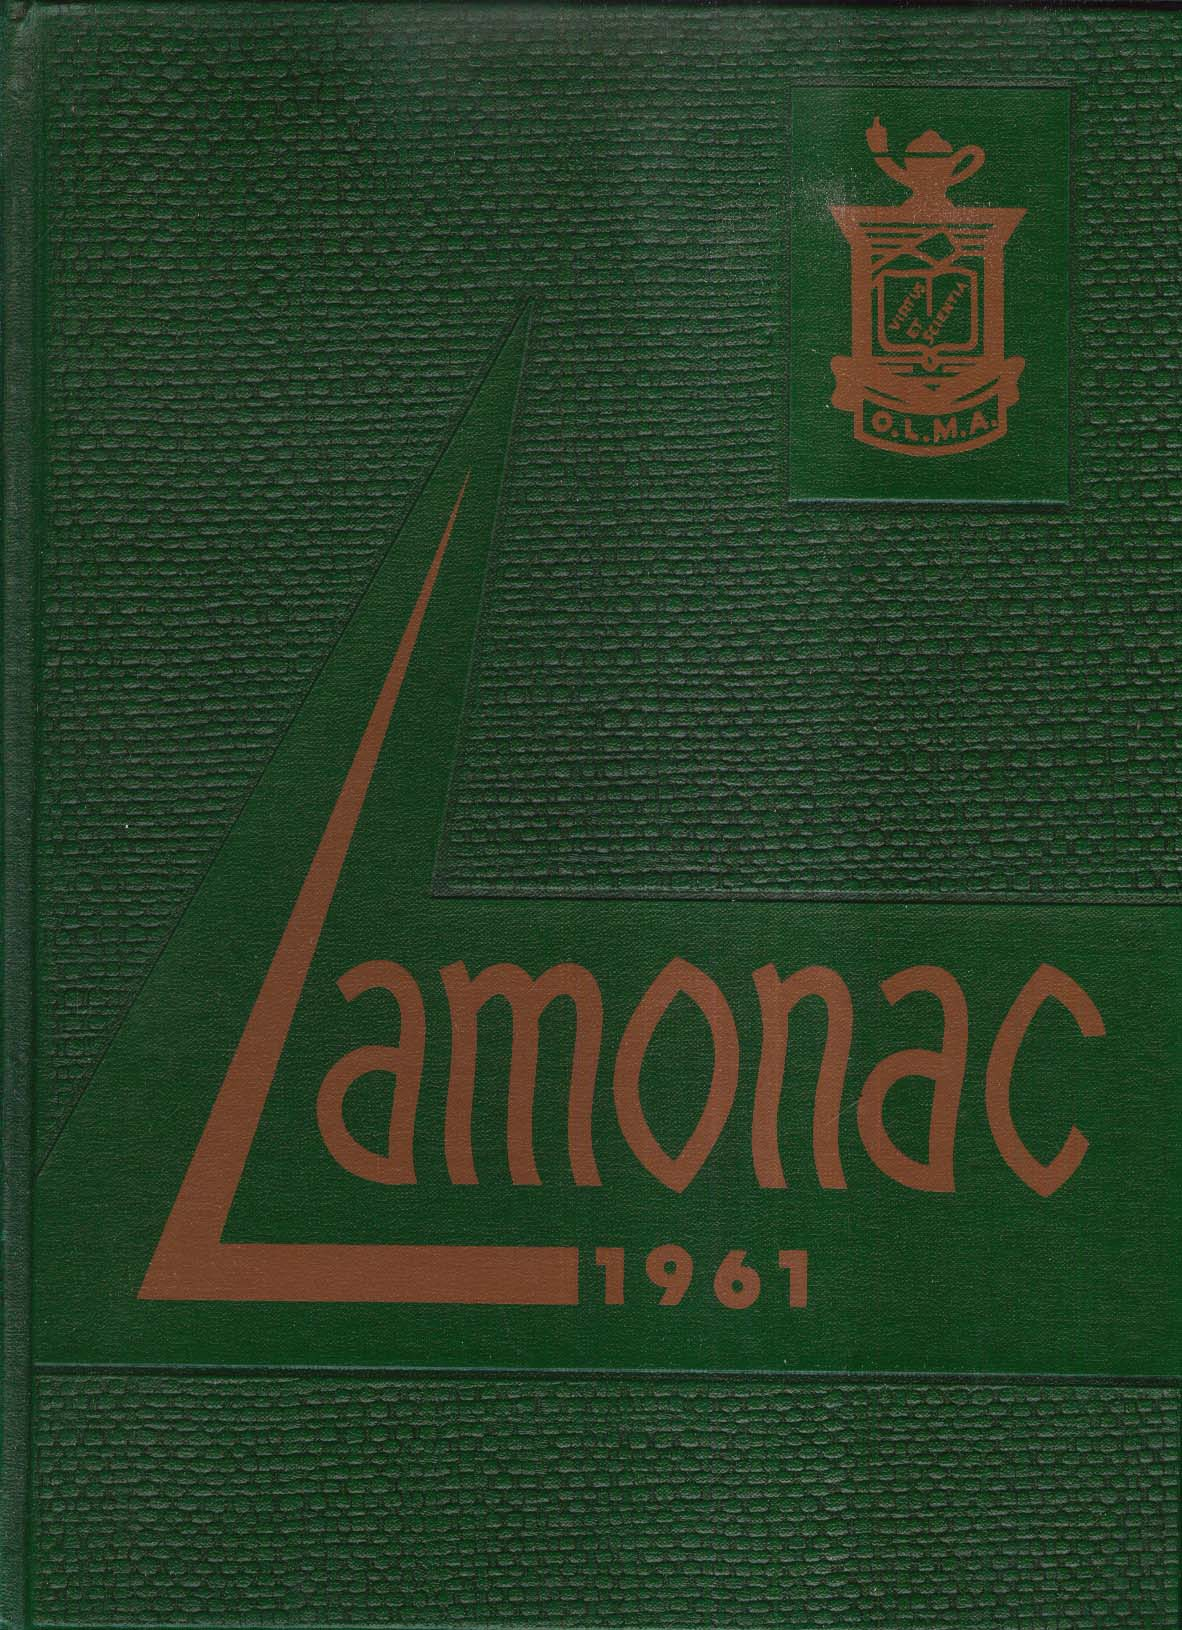 Lamonac 1961 Lady of Monadnock Academy Yearbook Jaffrey New Hampshire NH